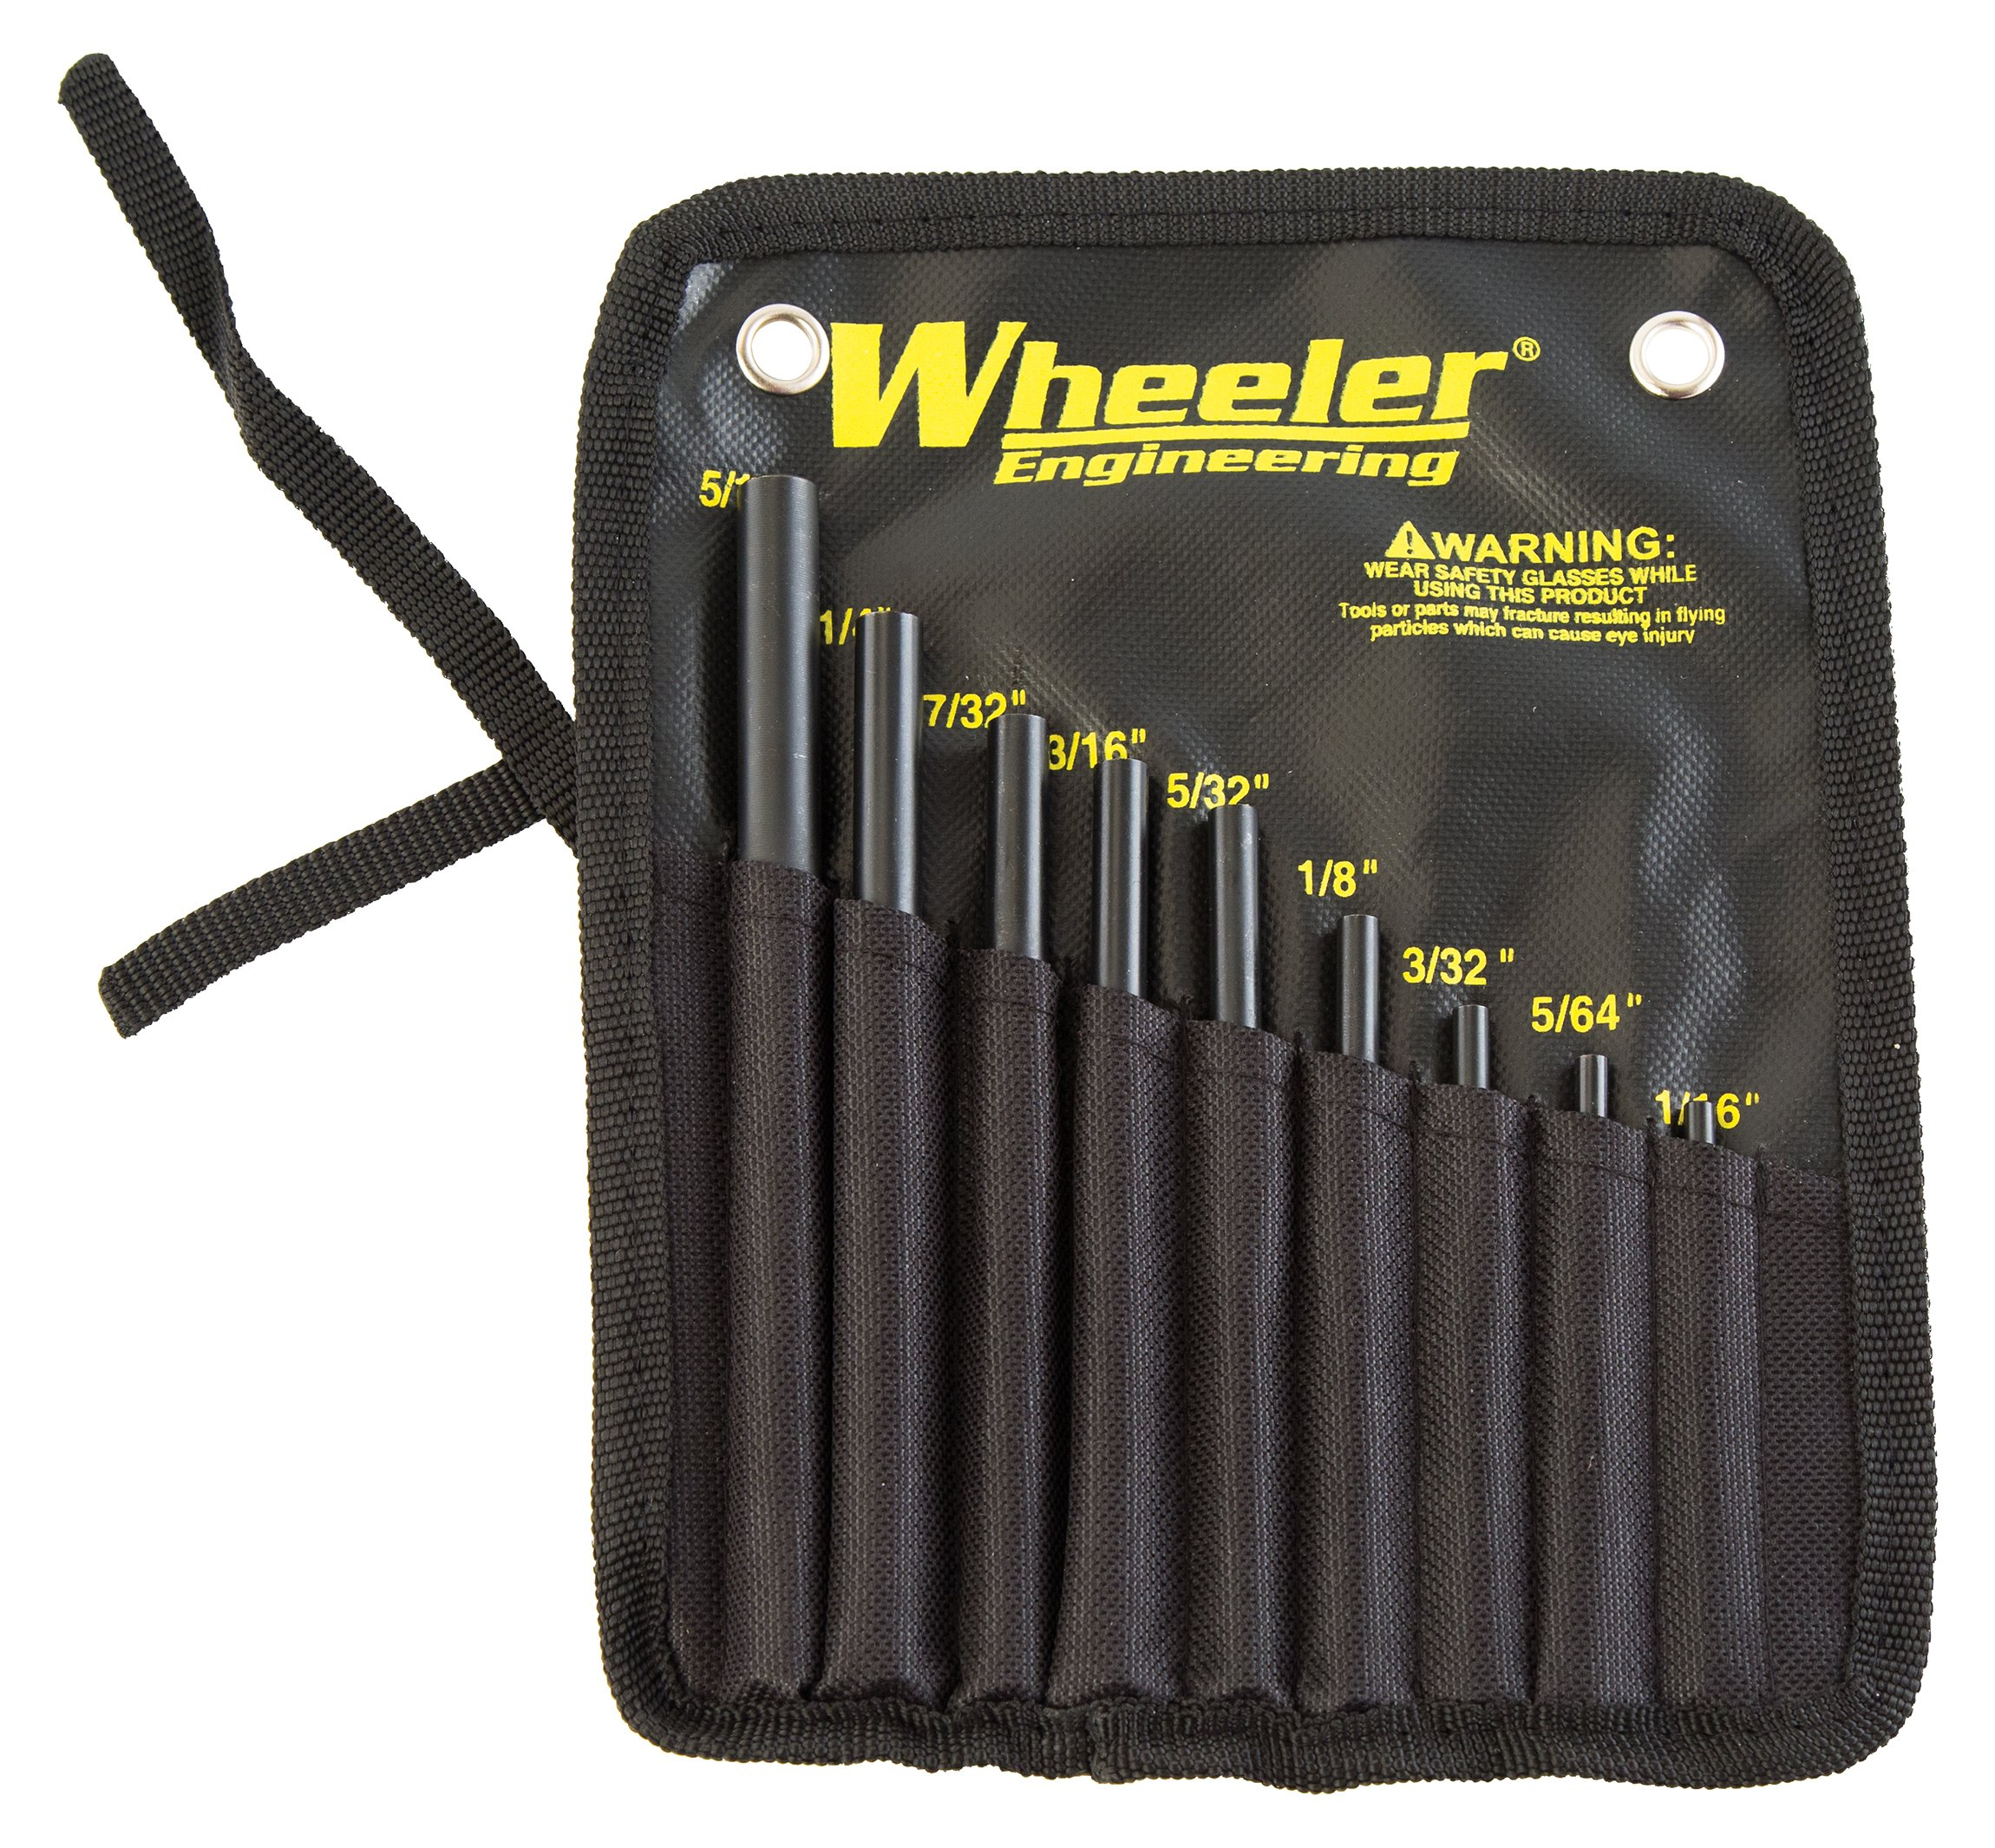 Wheeler Engineering Roll Pin Starter Punch Set by Wheeler